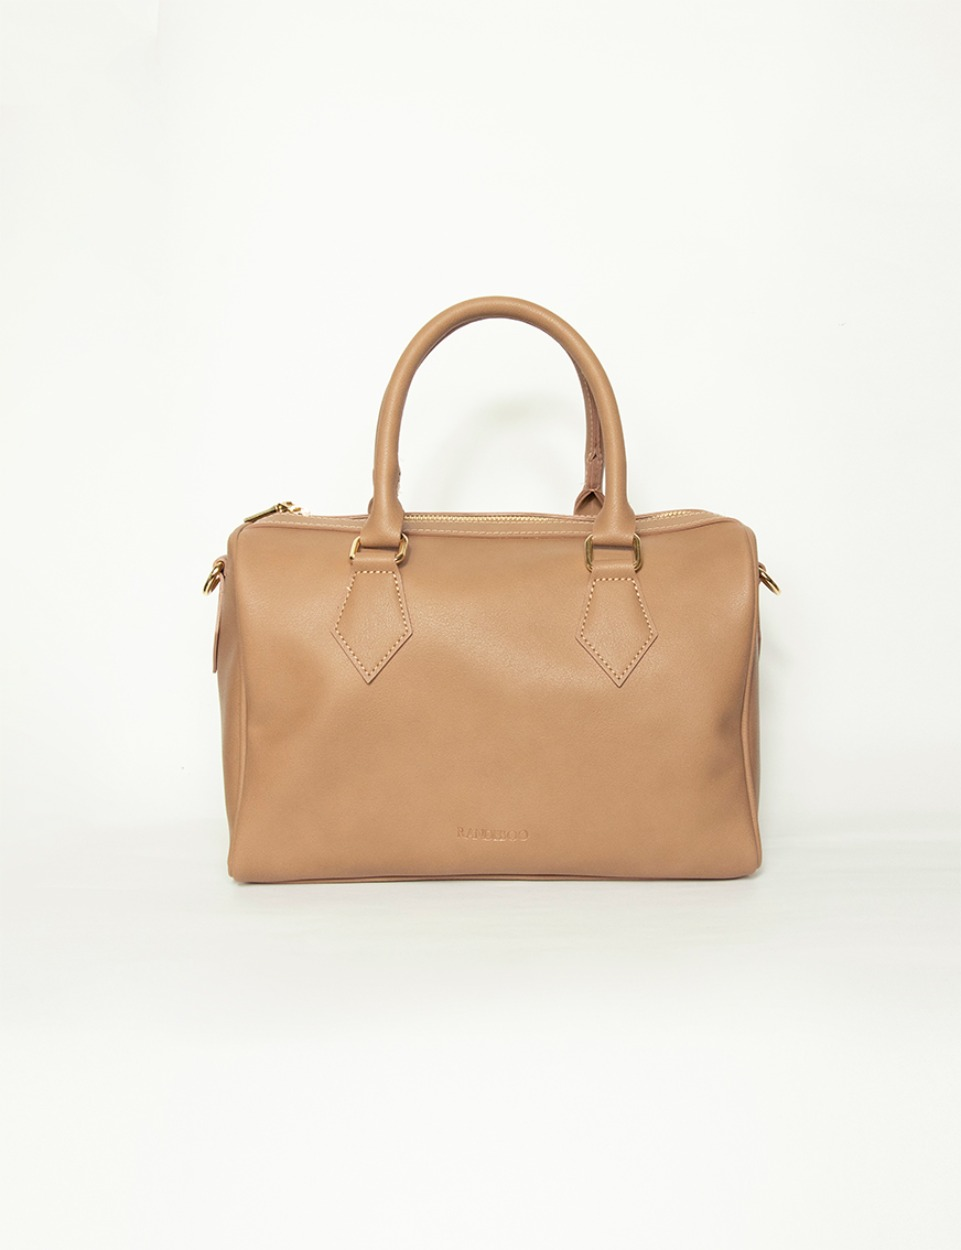 RB boston bag (beige)